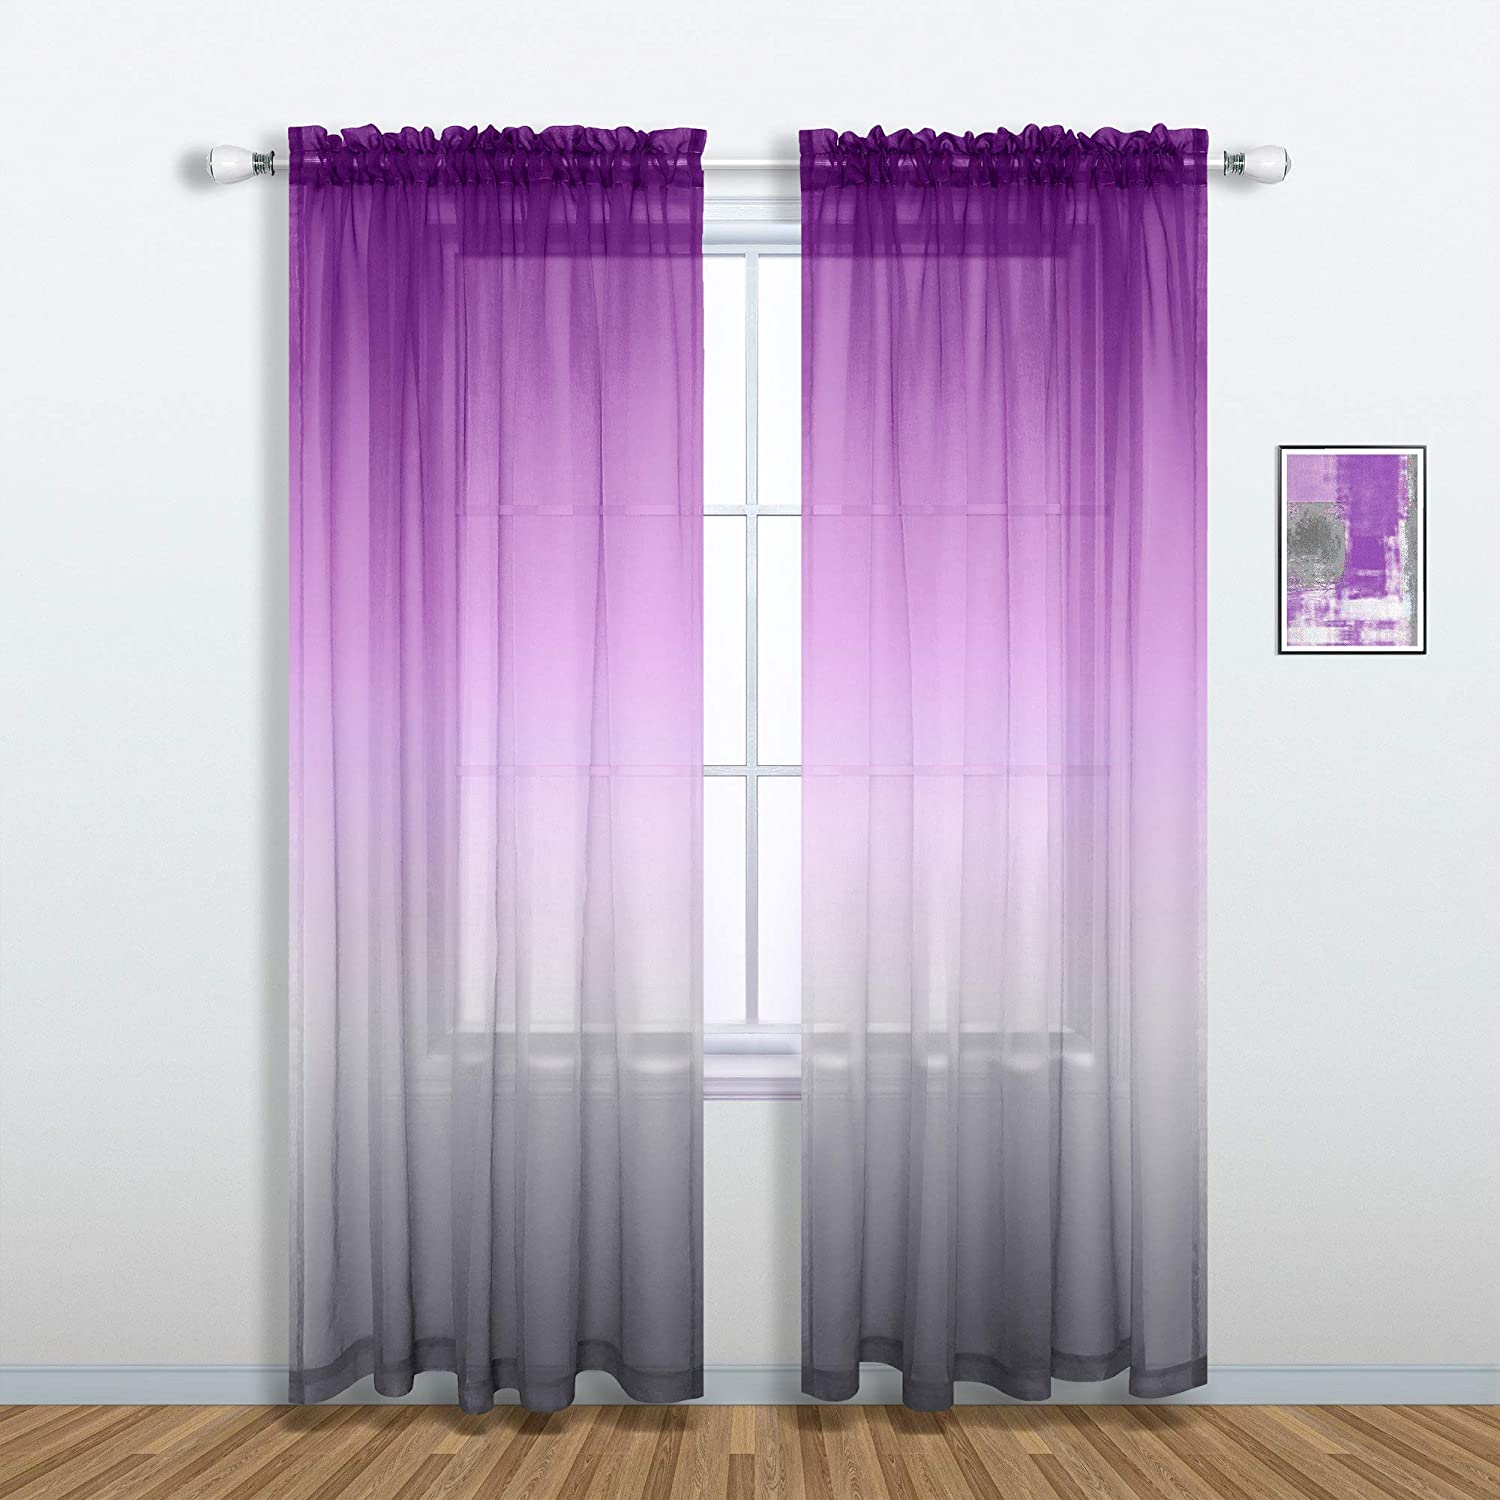 Purple and Grey Curtains for Living Room Decor Set of 1 Single Sheer Window Panel Pocket Ombre Luxury Curtains for Bedroom Kids Girls Women Decorations 52 x 84 Inch Length Royal Lilac and Gray